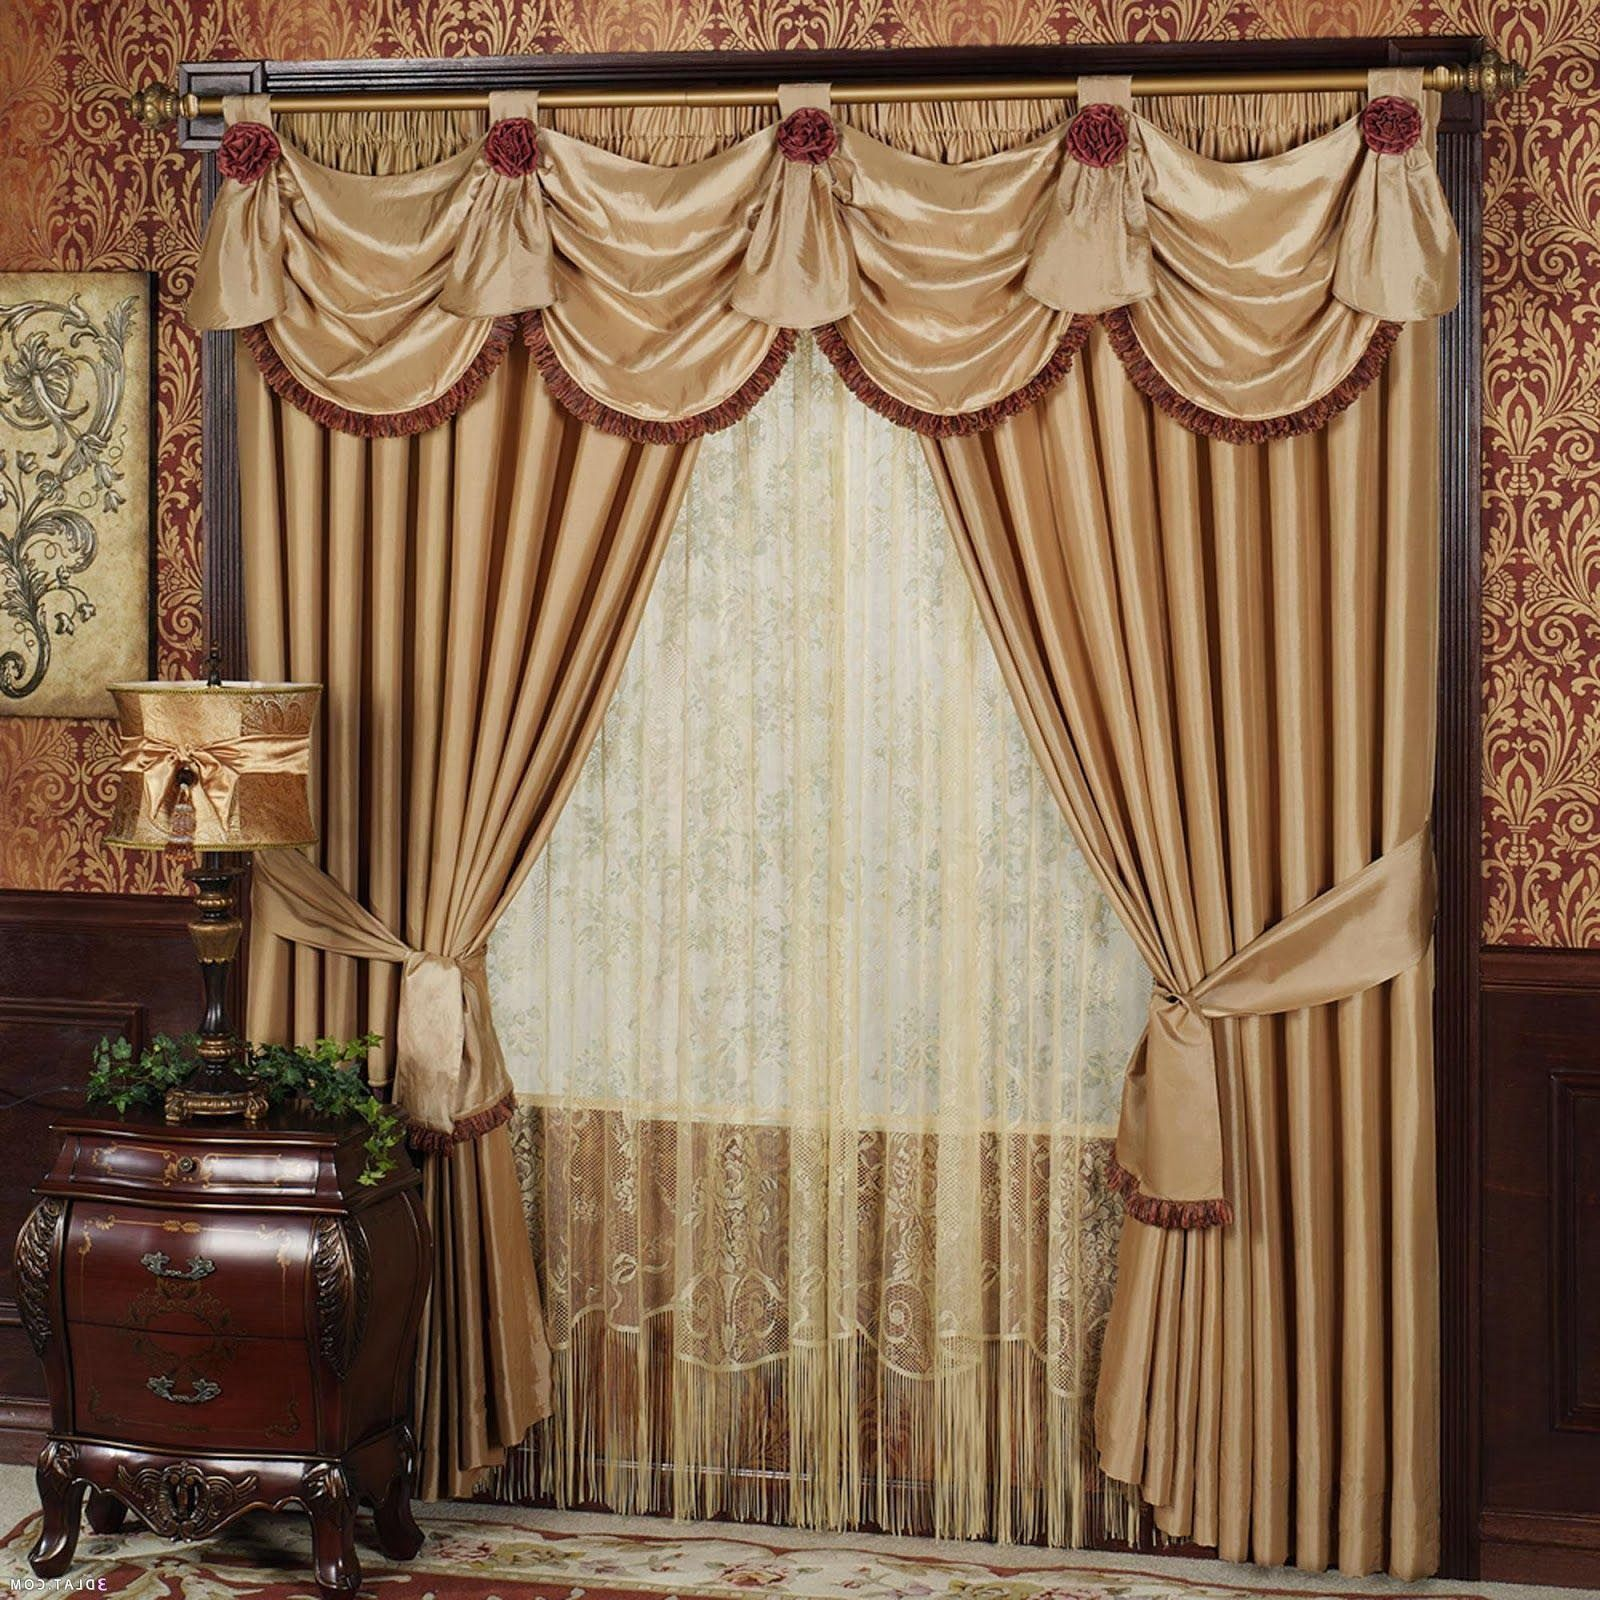 Living Room D With Valances